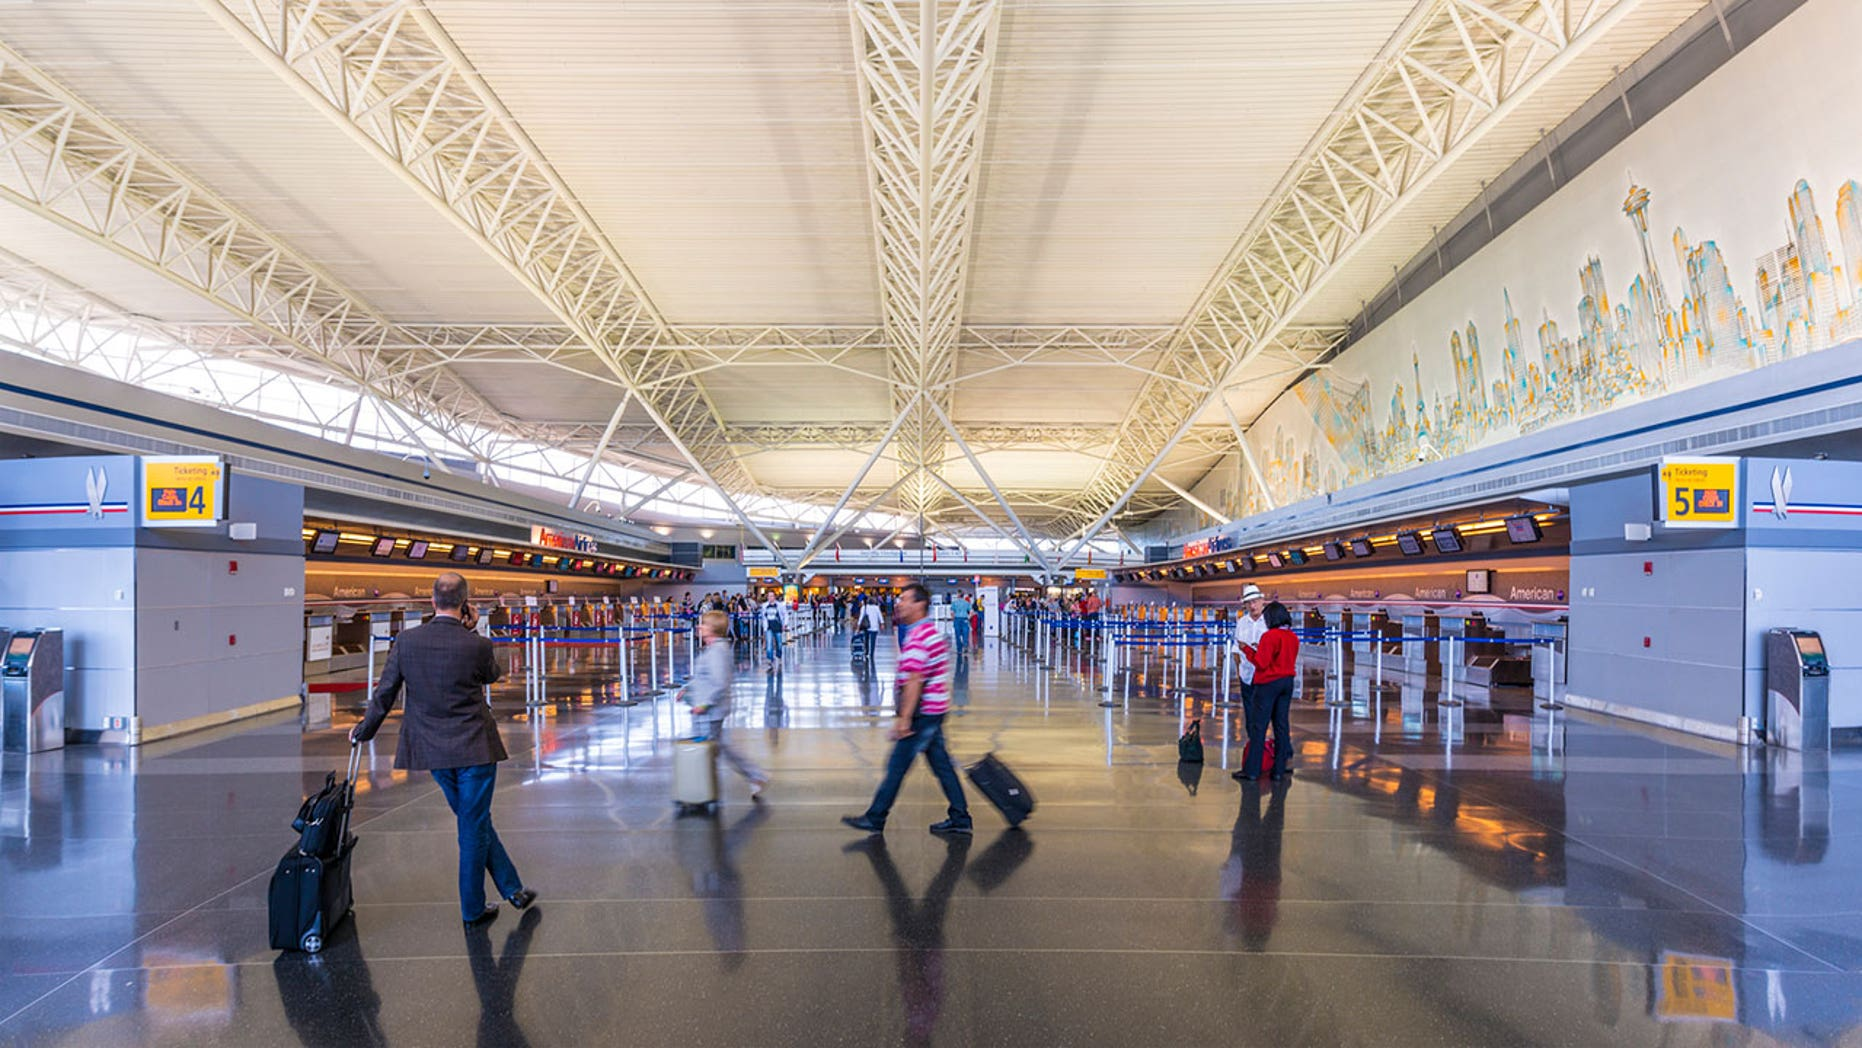 Workers at four major airports, including JFK (above), were planning to strike, citing unfair labor conditions.